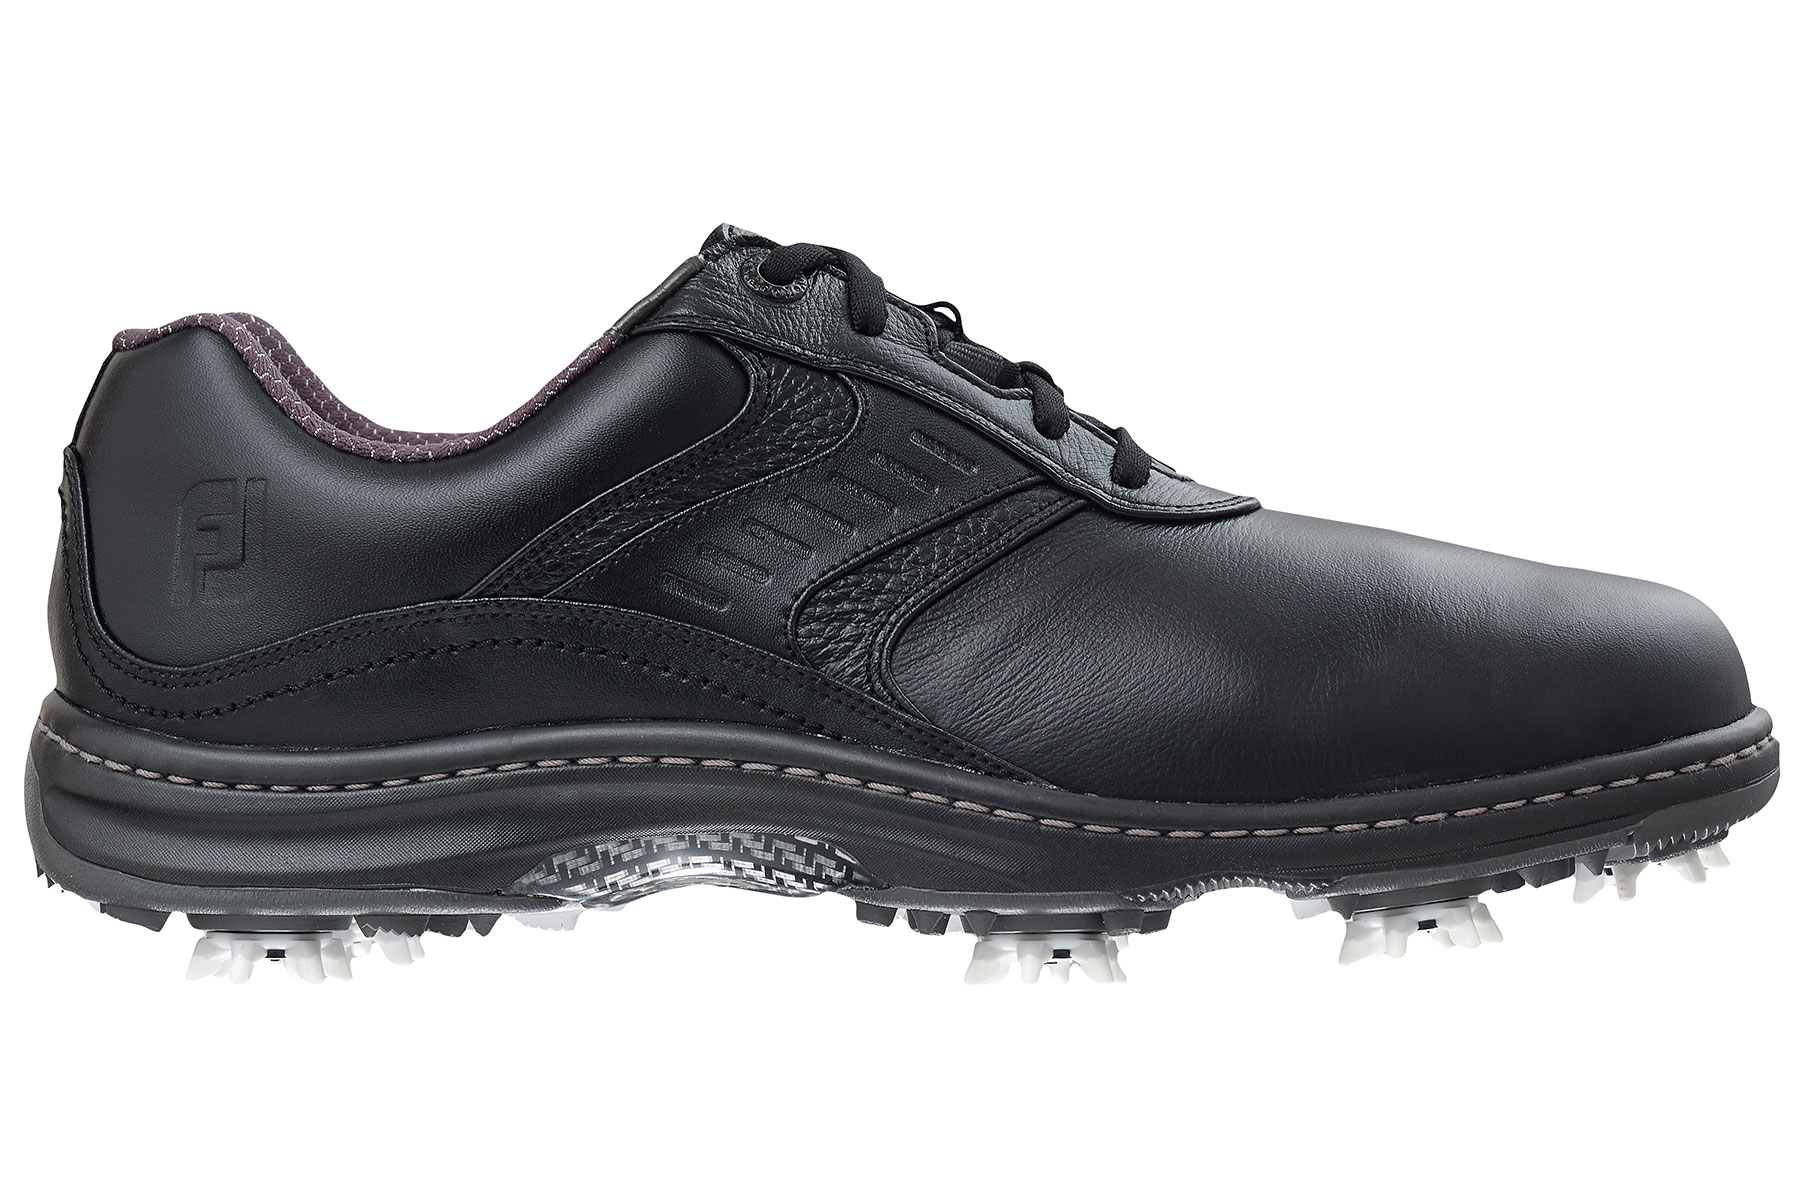 Mens Footjoy Golf Shoes Black